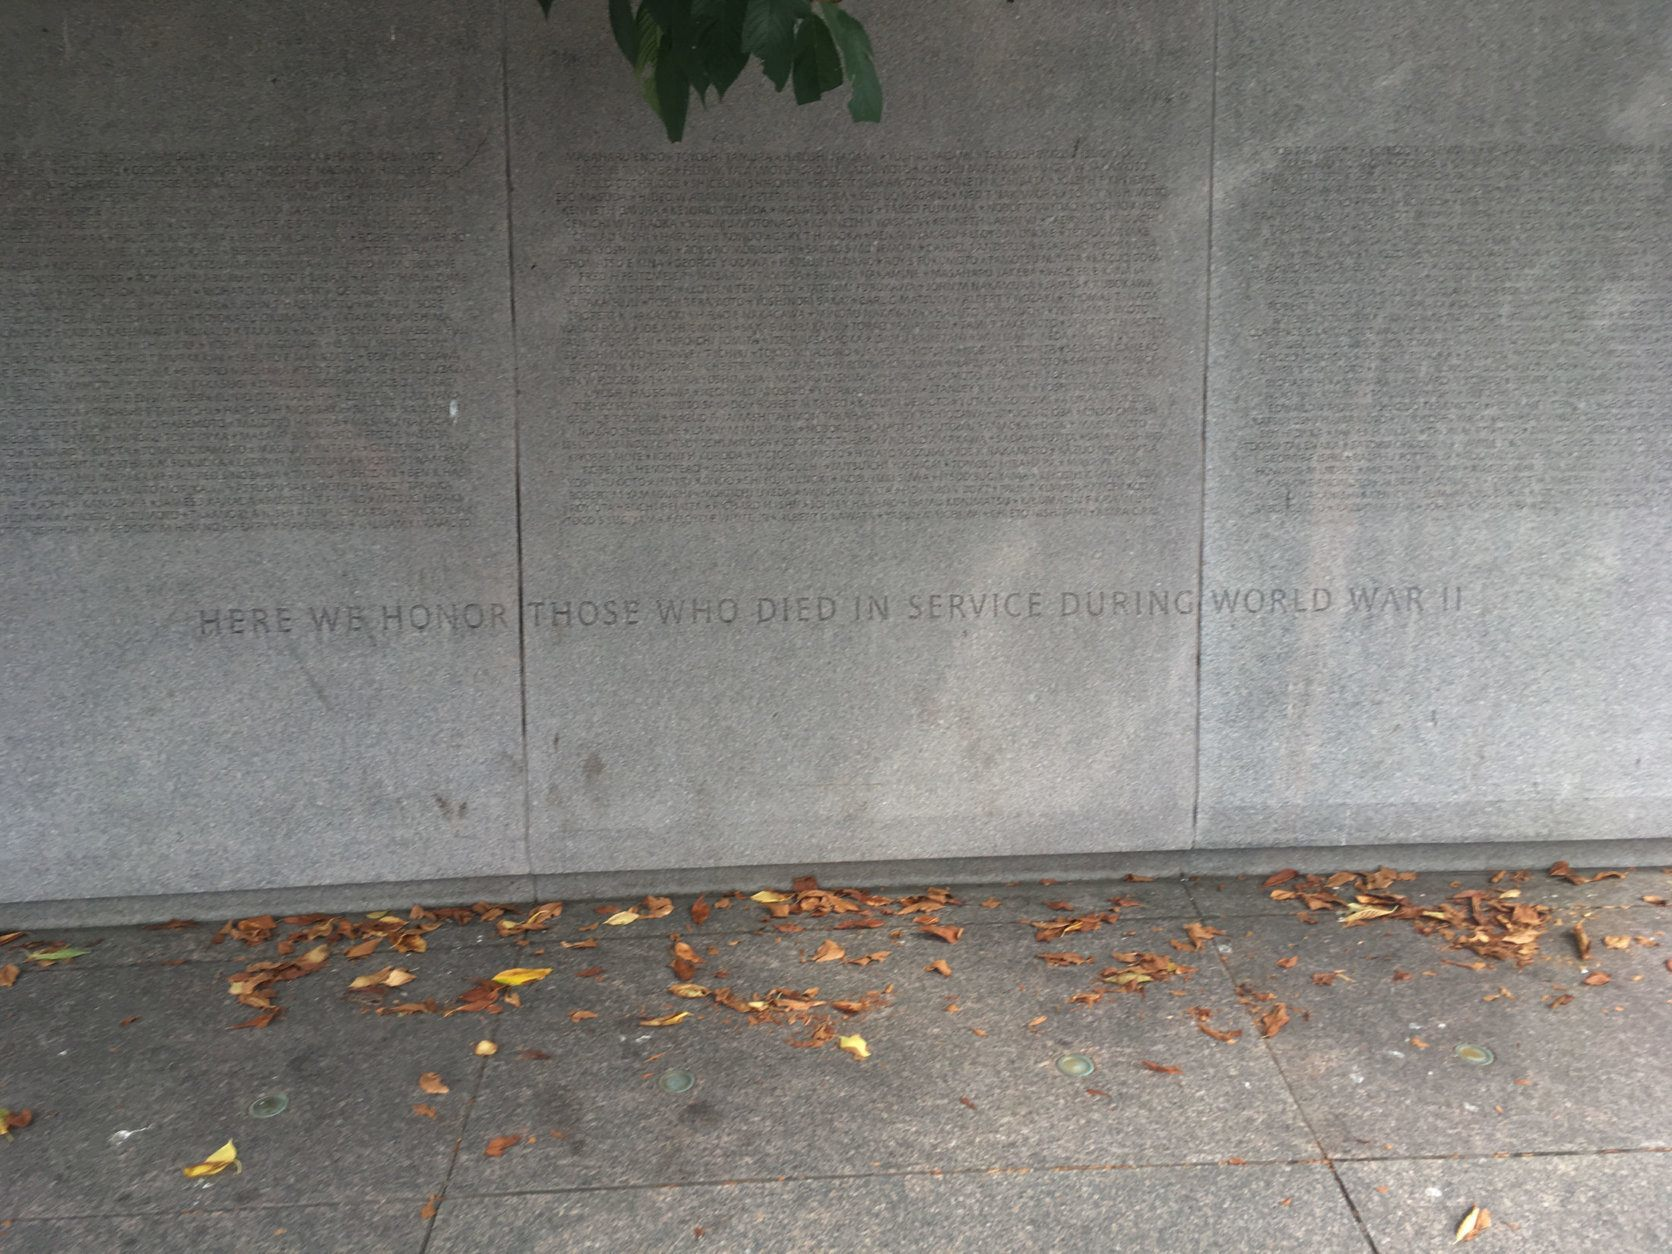 <p>About 800 Japanese-Americans were killed fighting for a country that held members of their ethnic group in captivity; their names are on the D.C. memorial.</p>